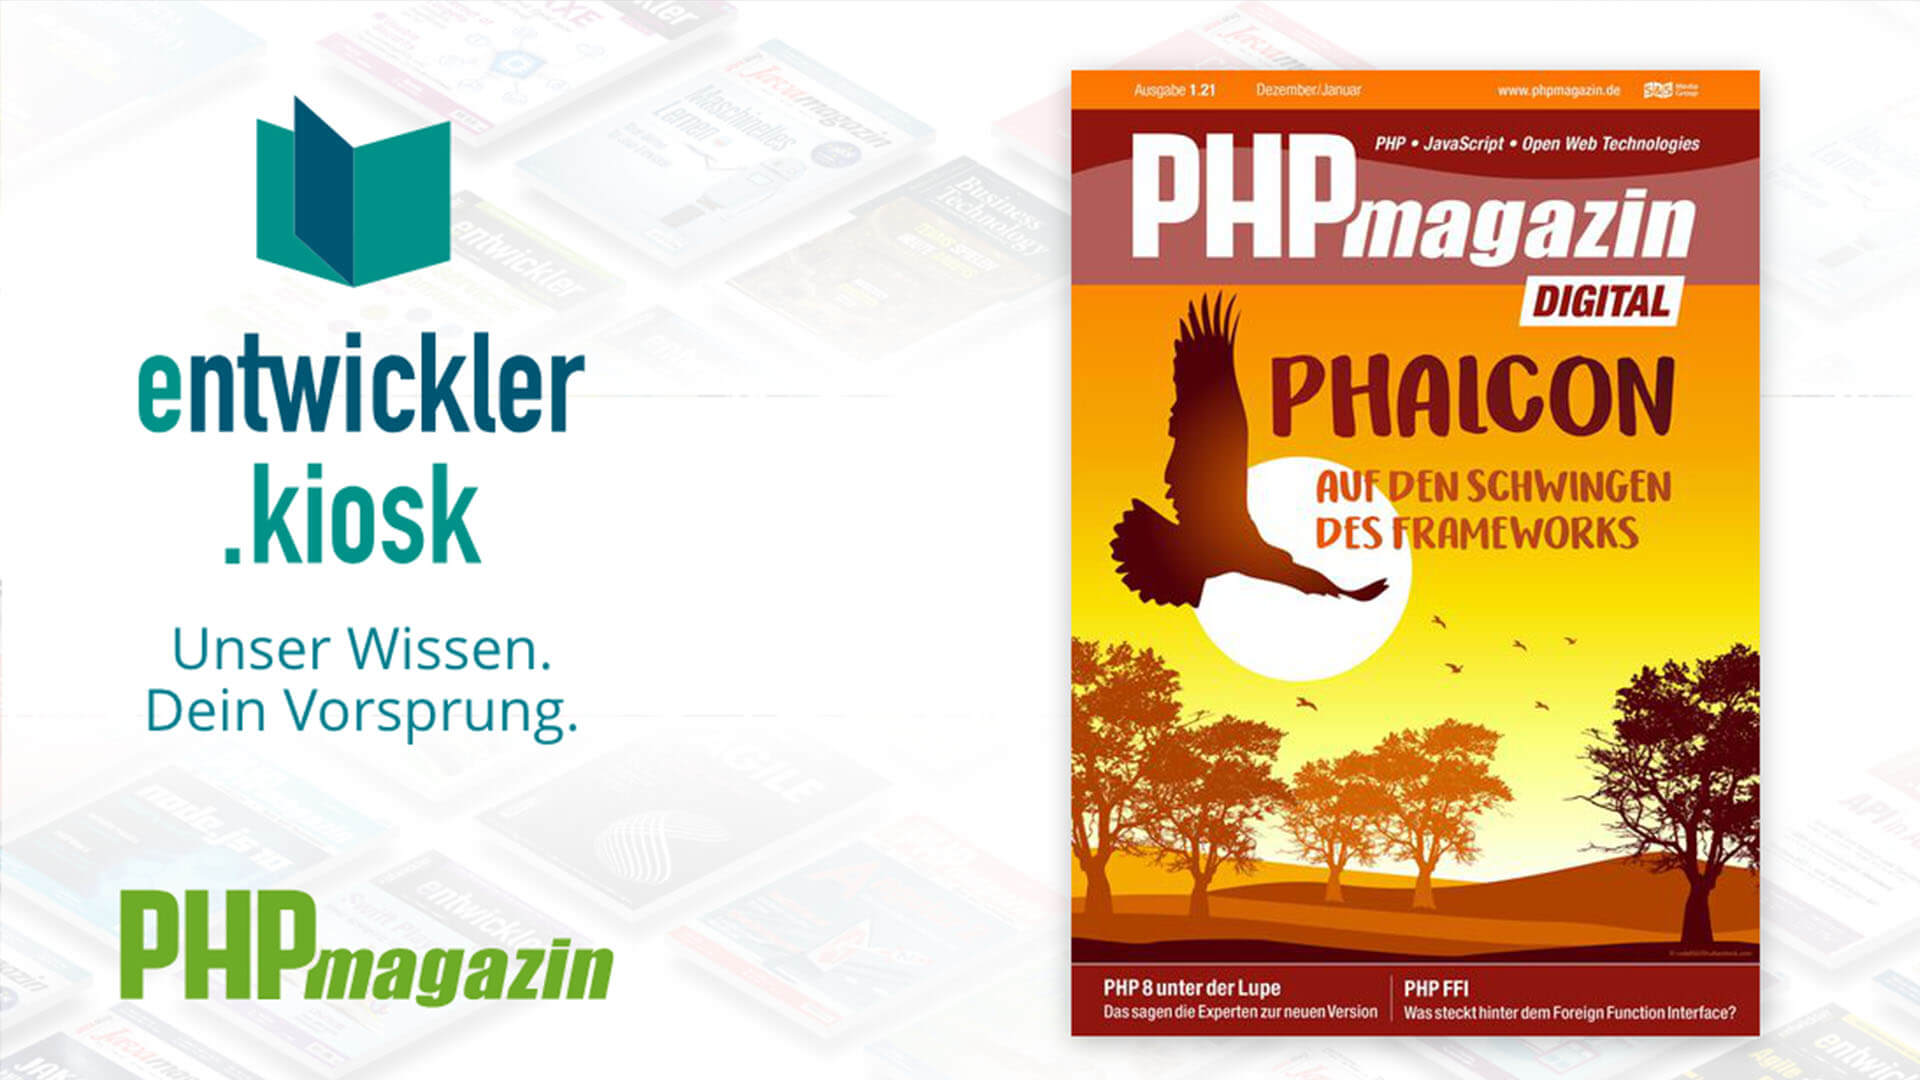 Article about Phalcon in a German magazine